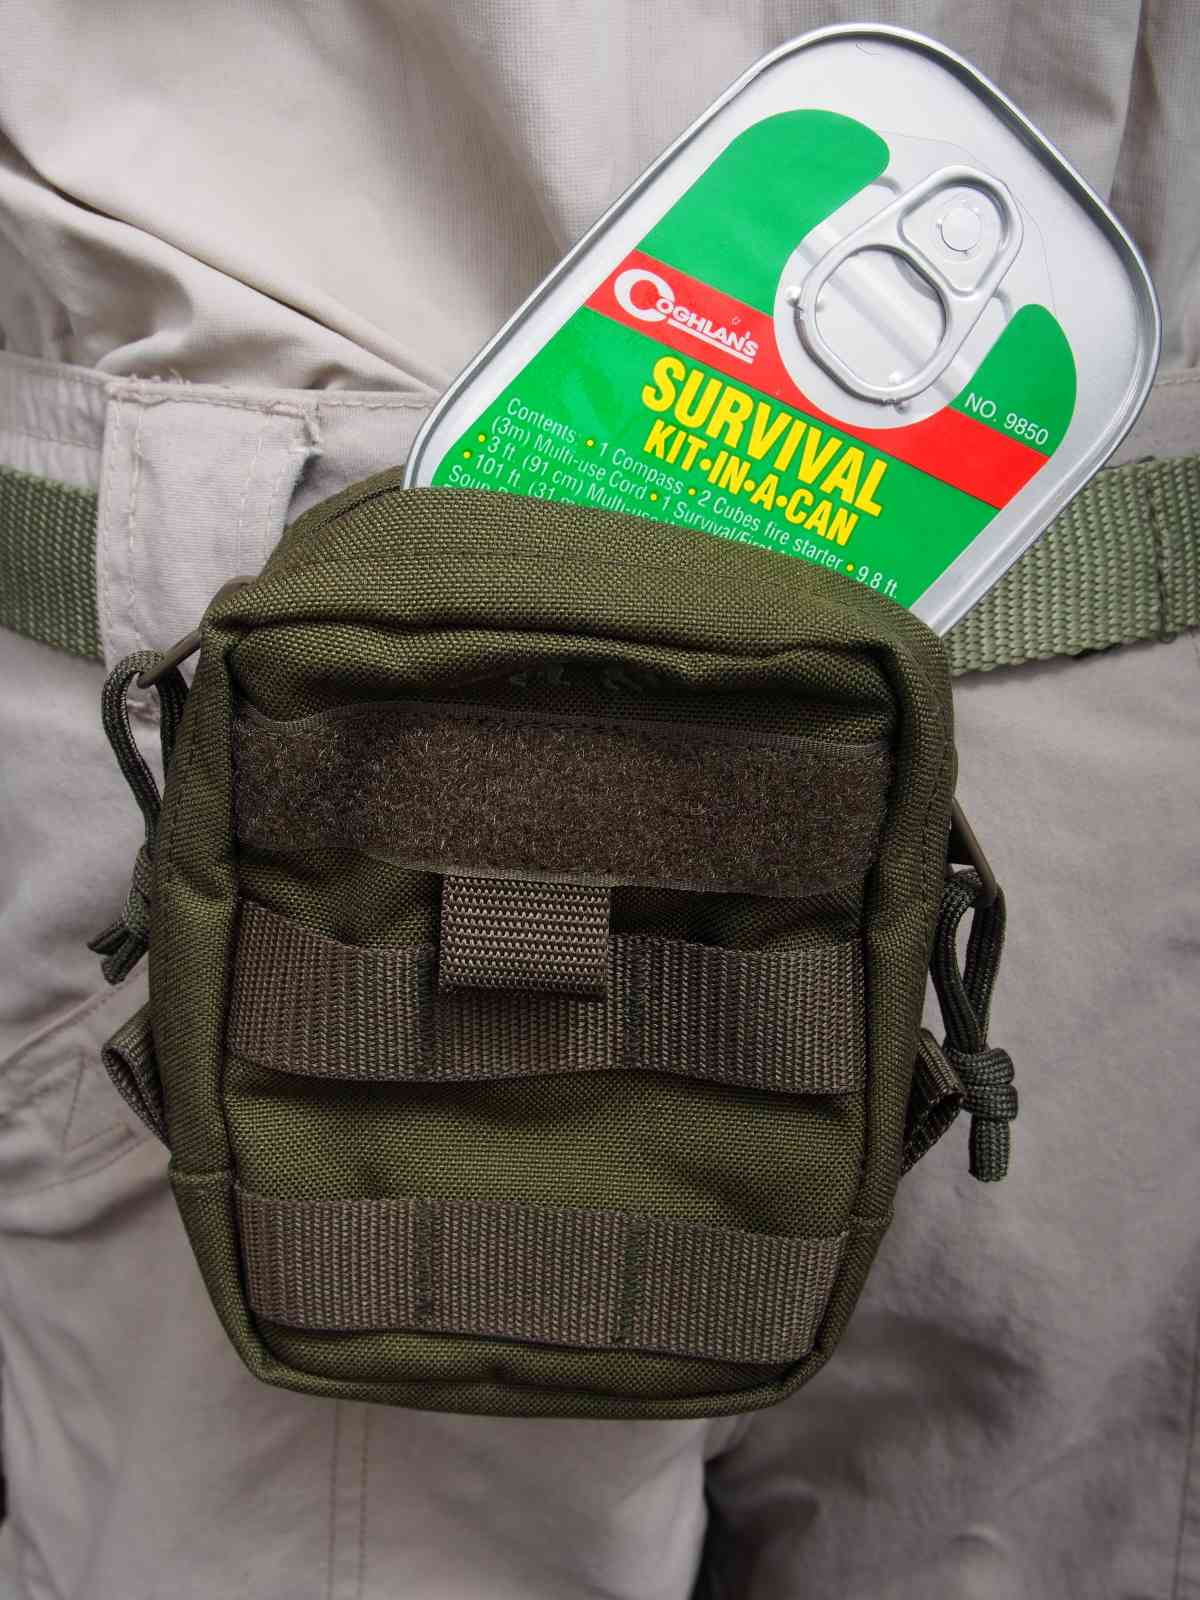 Coghlan's 01Coghlan's Survival-Kit - Kit-in-a-Can - Perfekt für das EDC